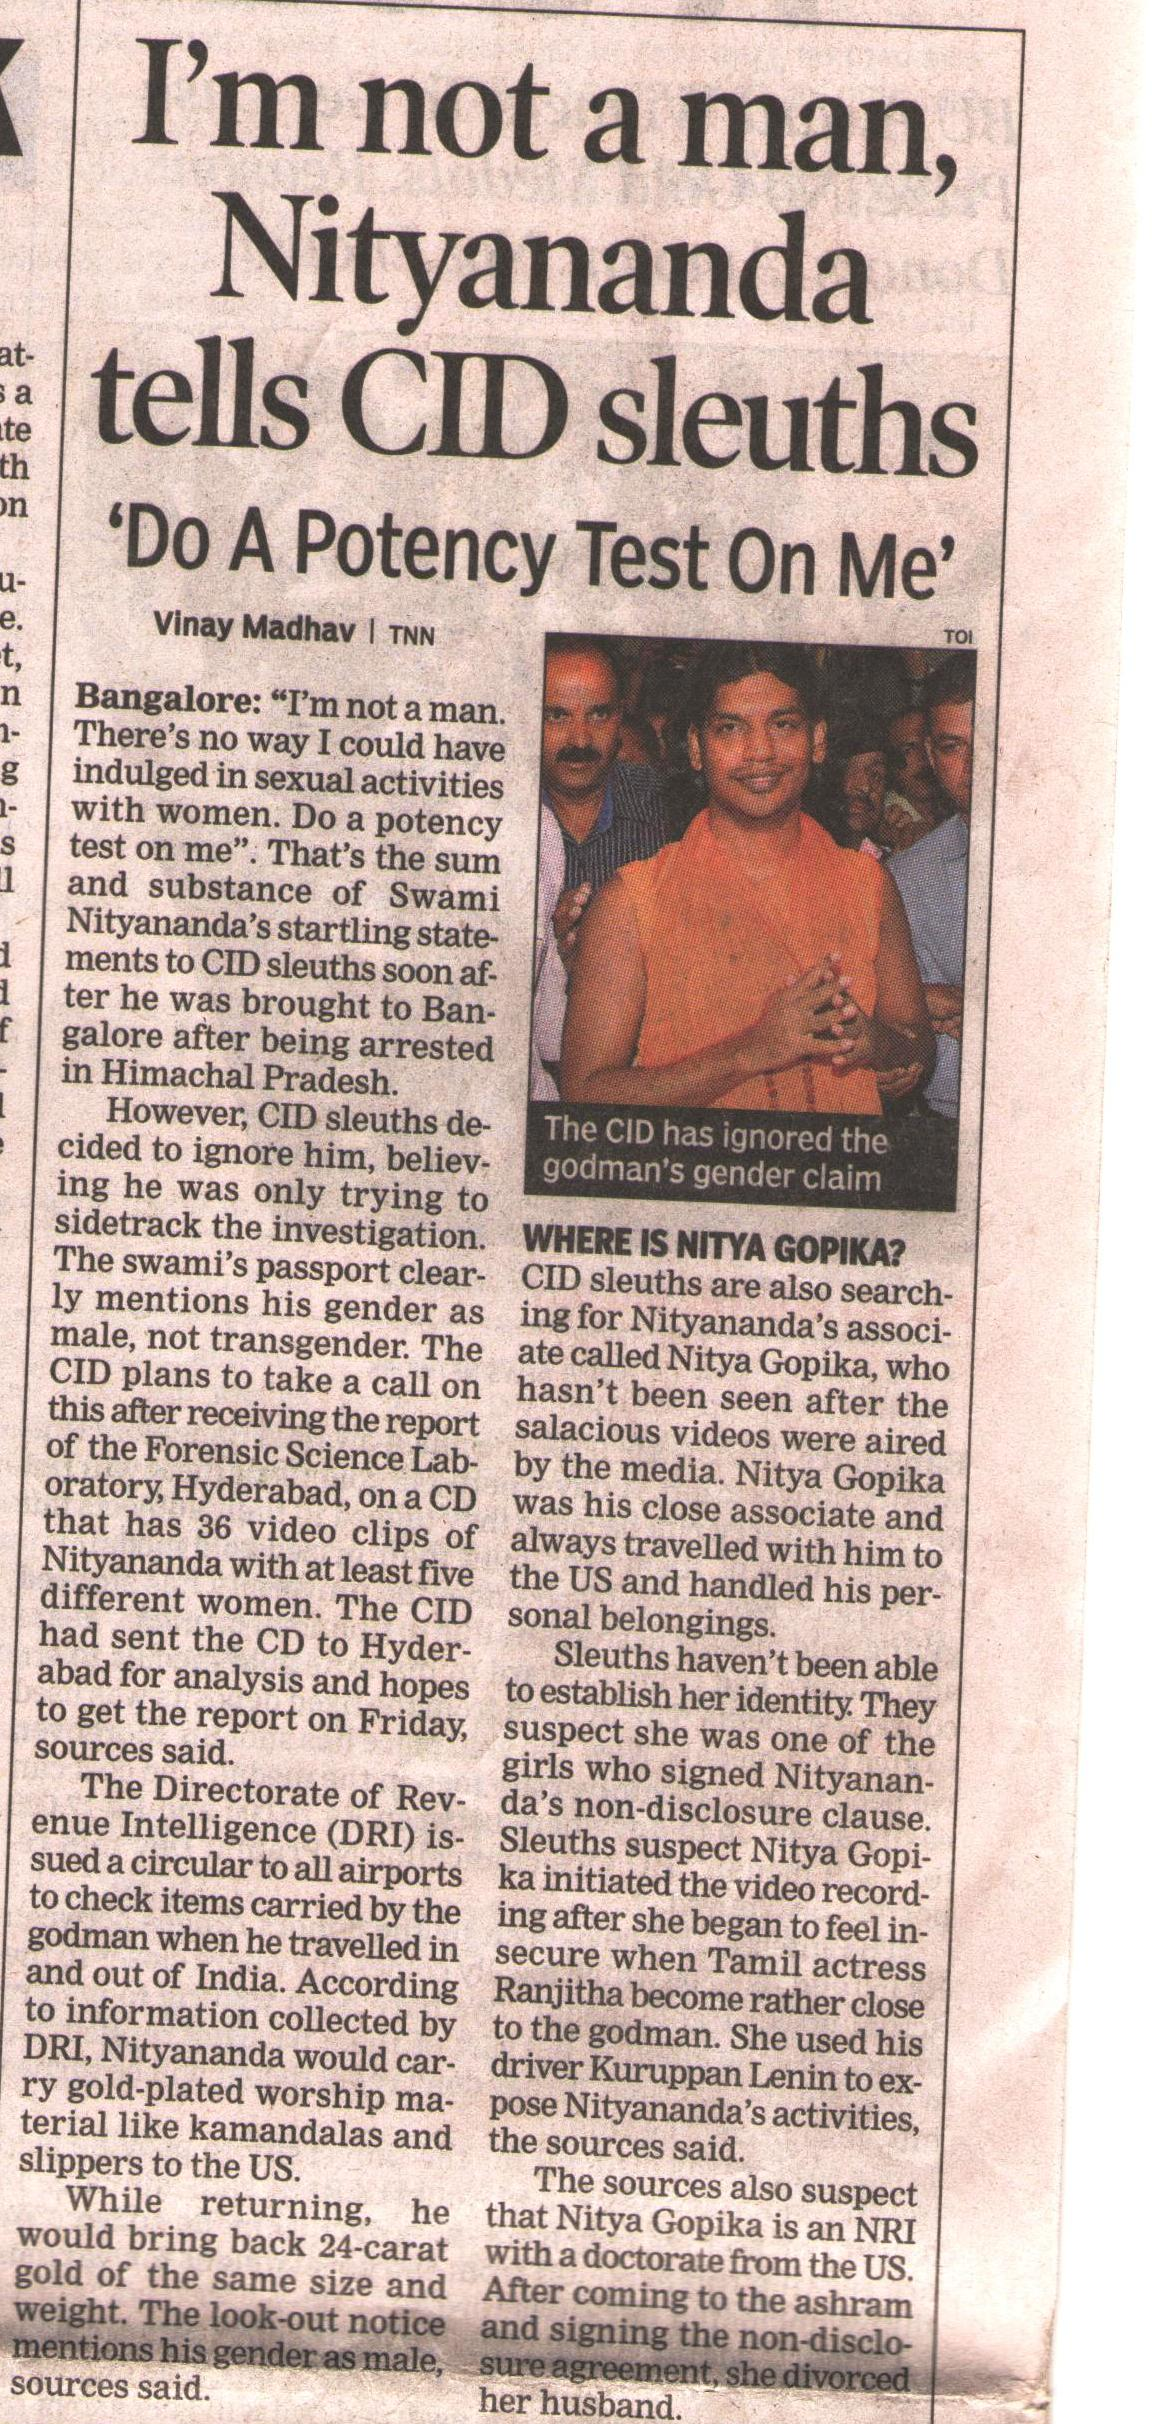 Times Of India_Apr 30 2010_Pg 1_I m not a man Nithyananda tells CID sleuths Do a potency test on me